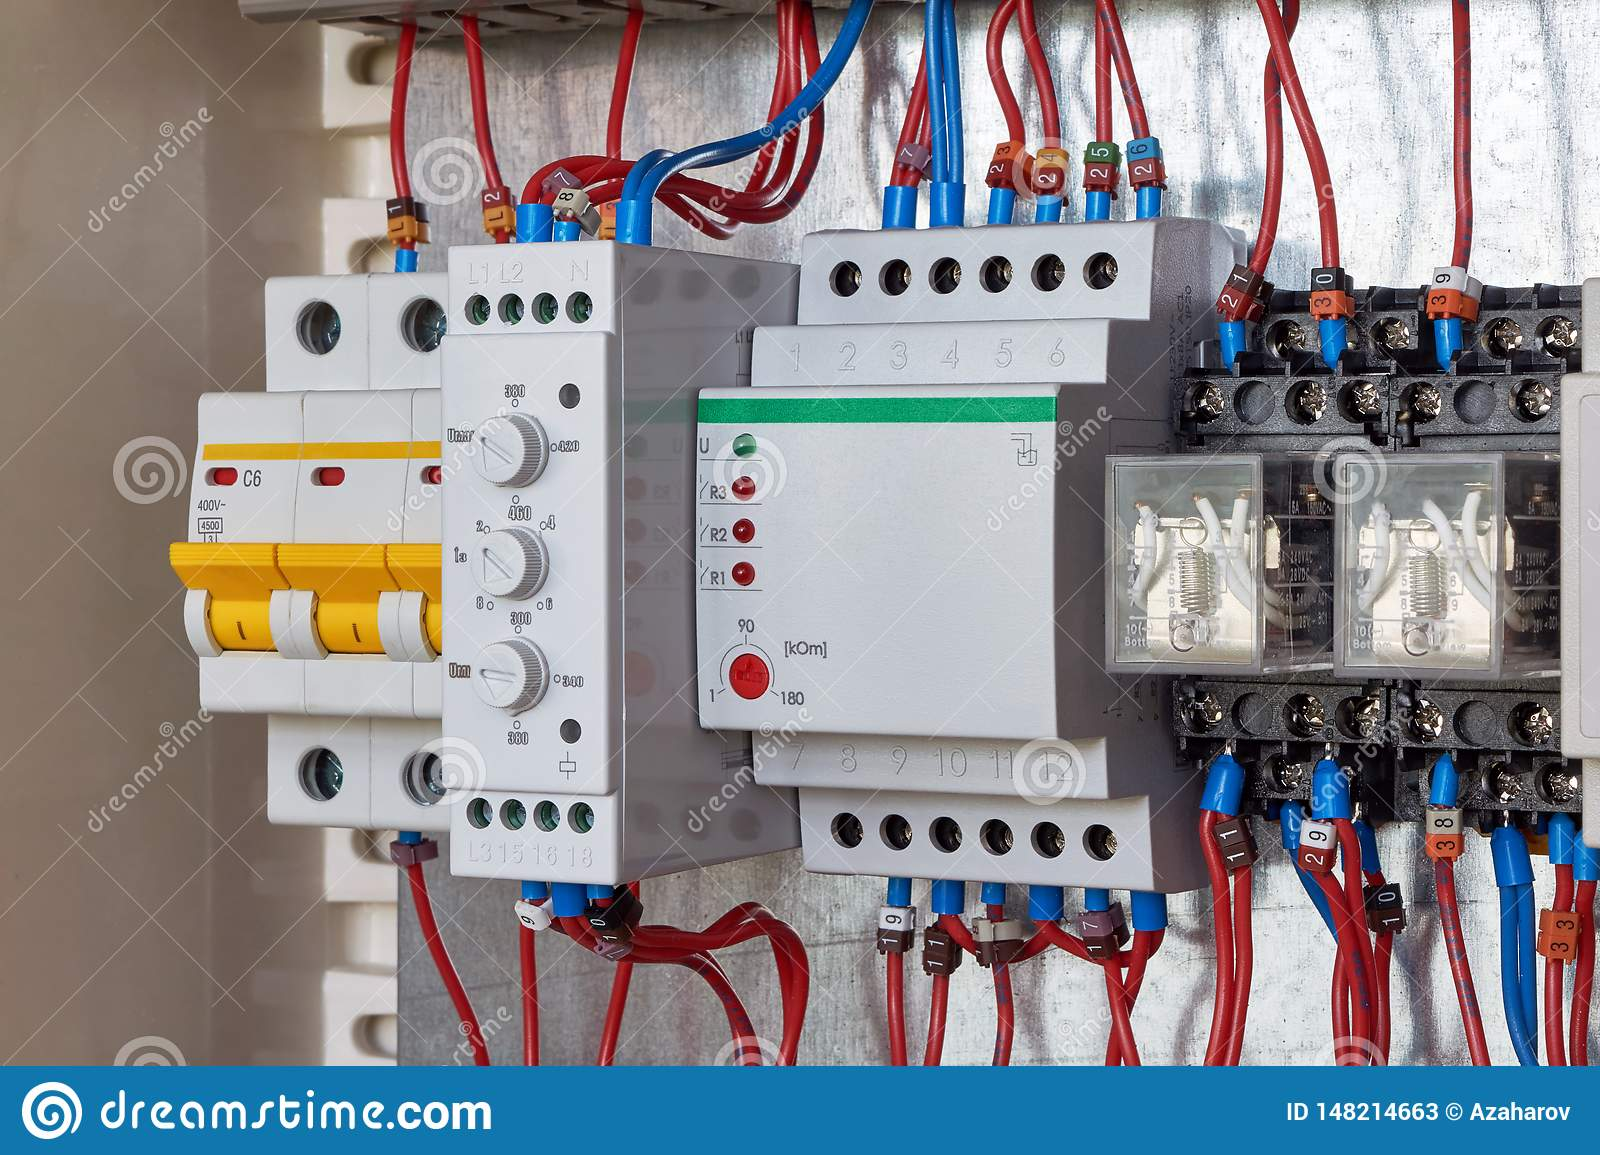 Circuit breaker, phase control relay, level control relay, intermediate relays in electrical Cabin